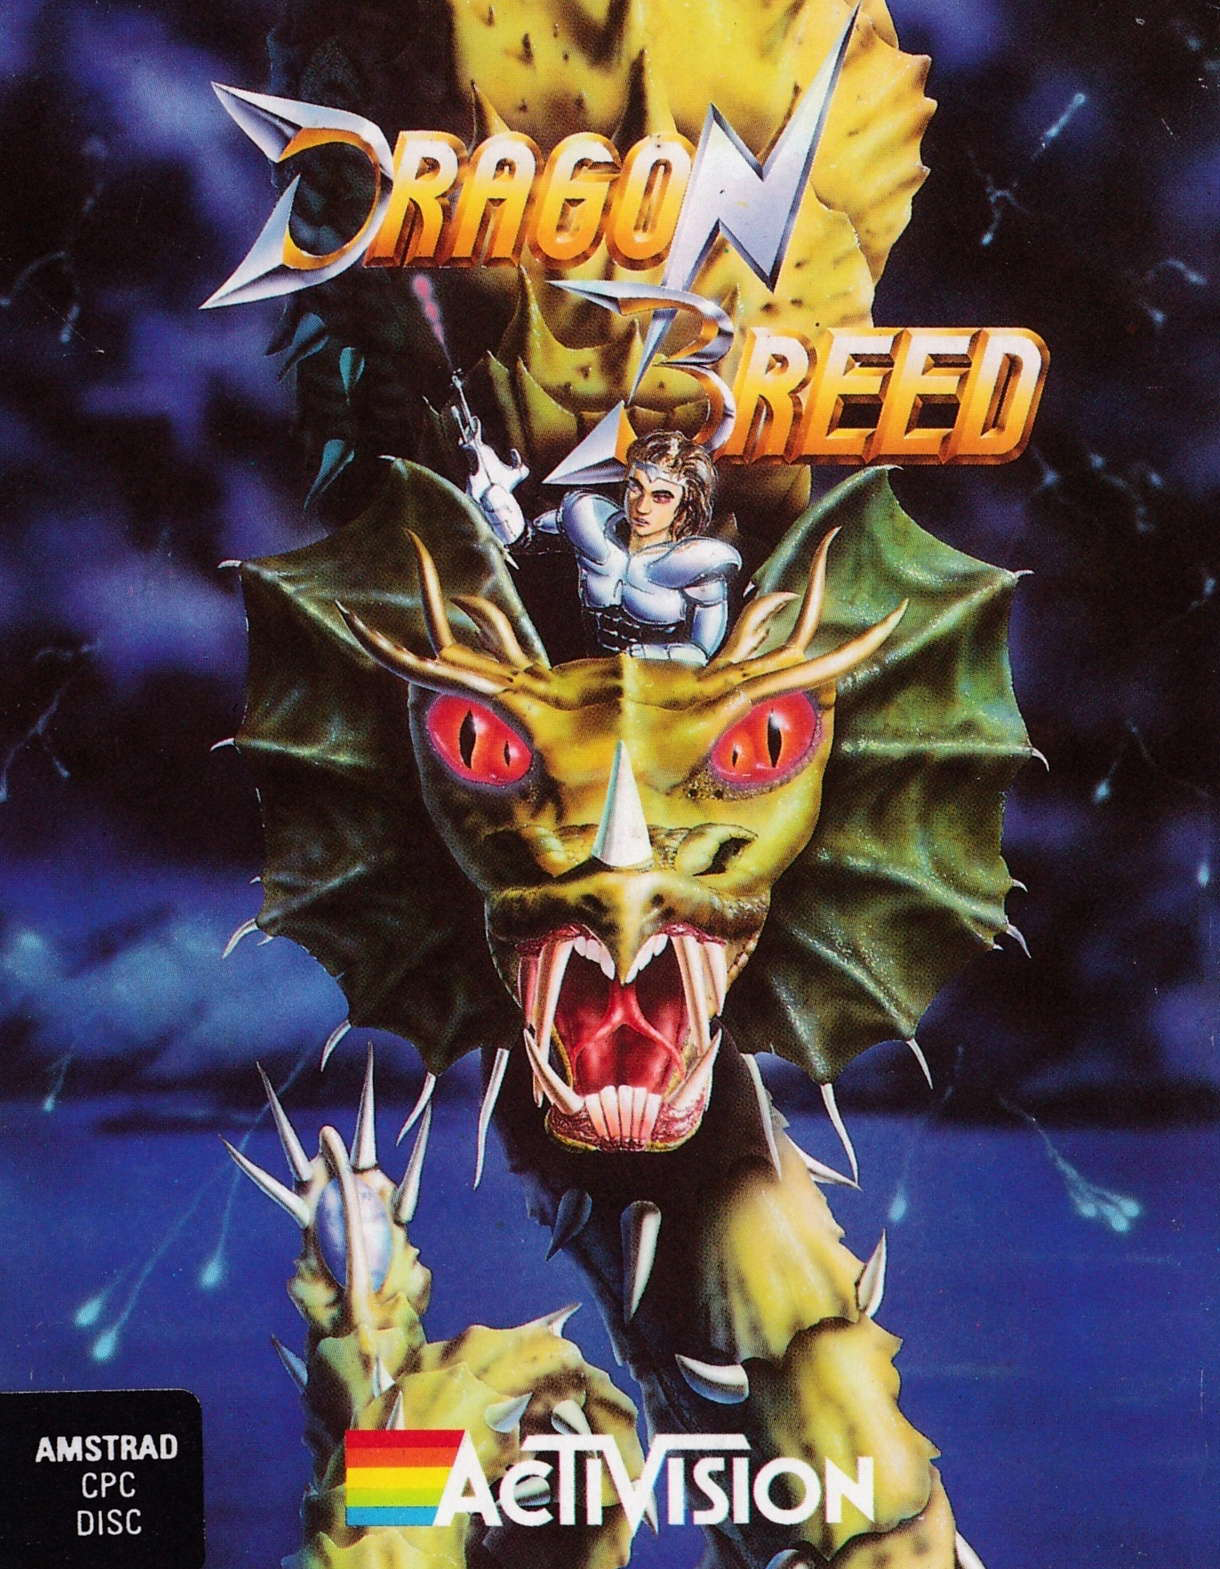 cover of the Amstrad CPC game Dragon Breed  by GameBase CPC